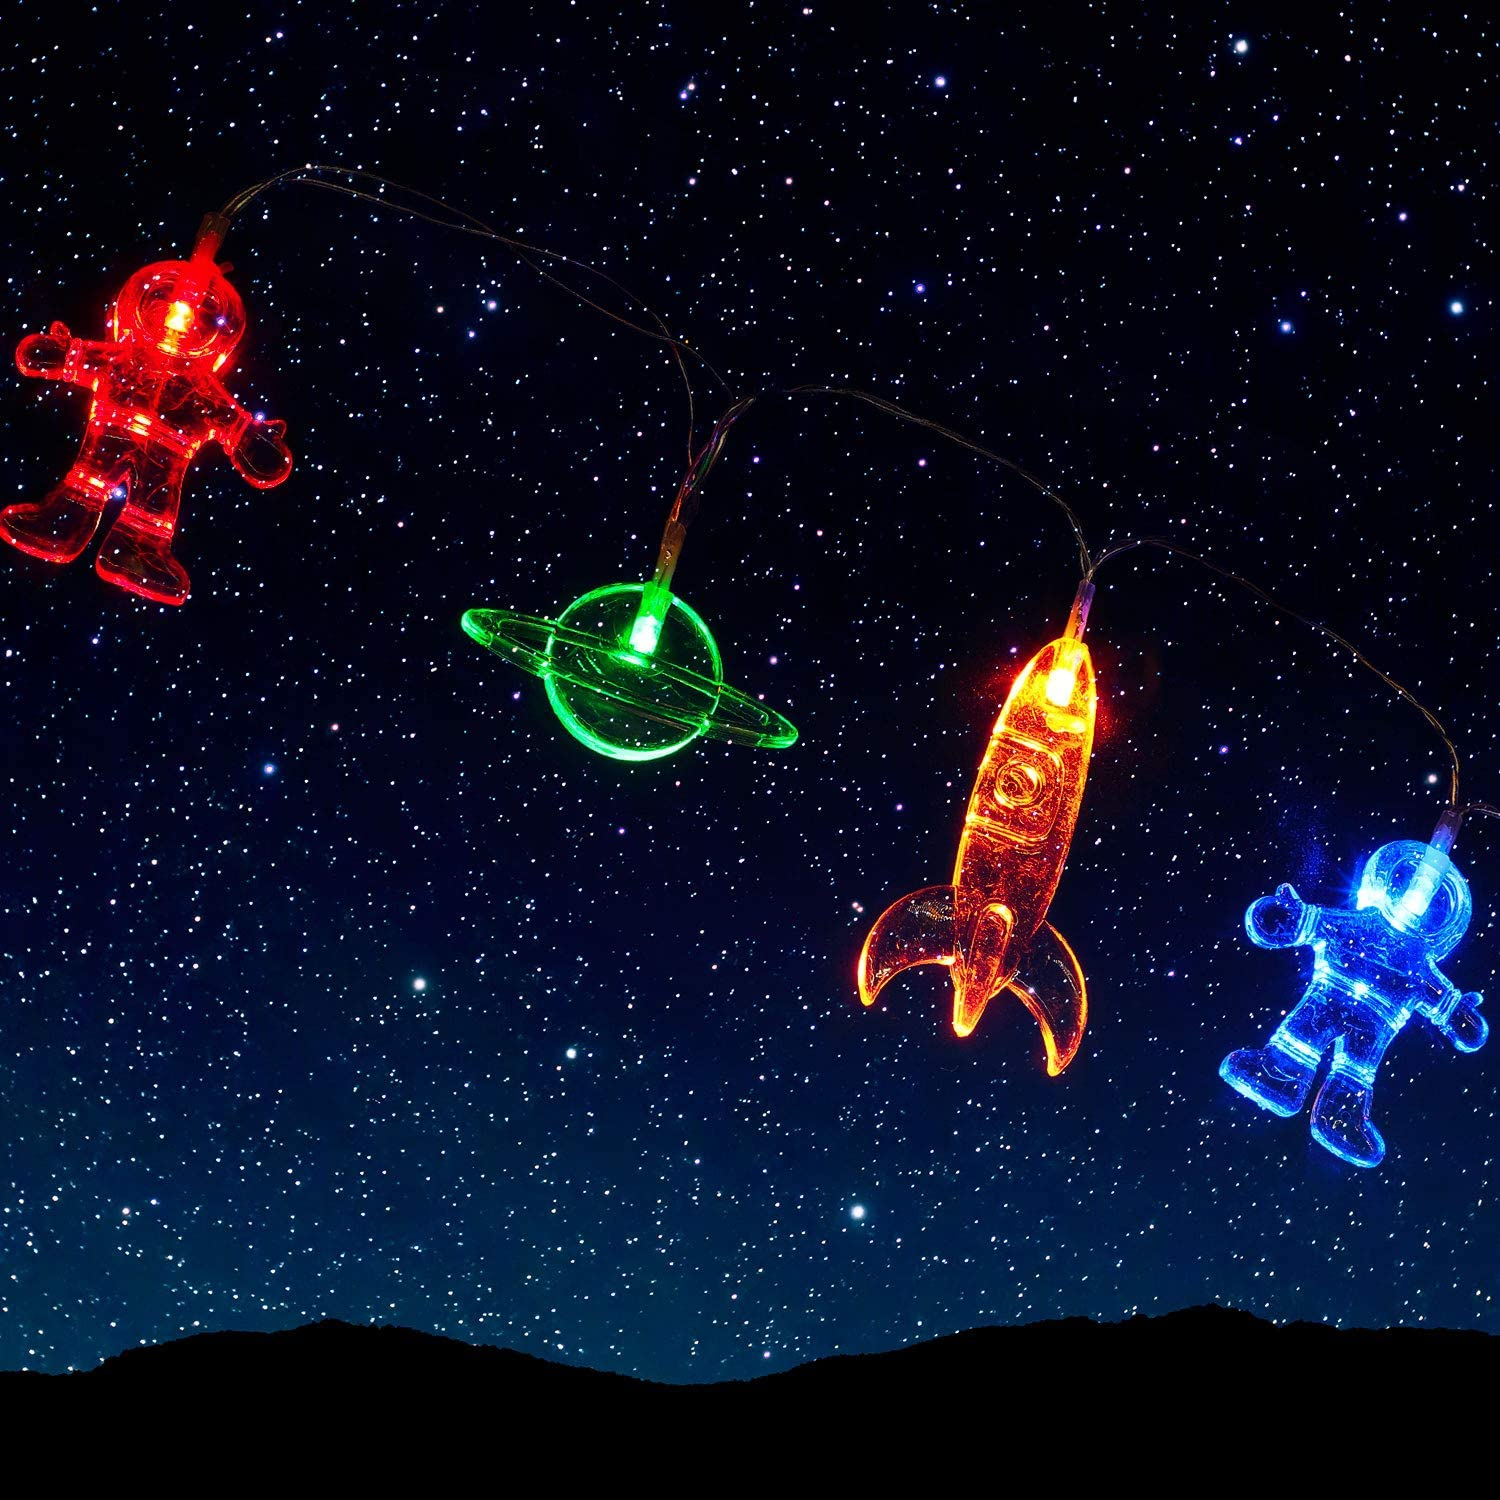 30 LED Children's Room LED String Light Astronaut Spaceship Rocket Pendants Holiday Party Lights Outerspace Room Decor 14.7 Feet Light for Kids Room Decor Birthday Party or Garden Patio (Colorful)